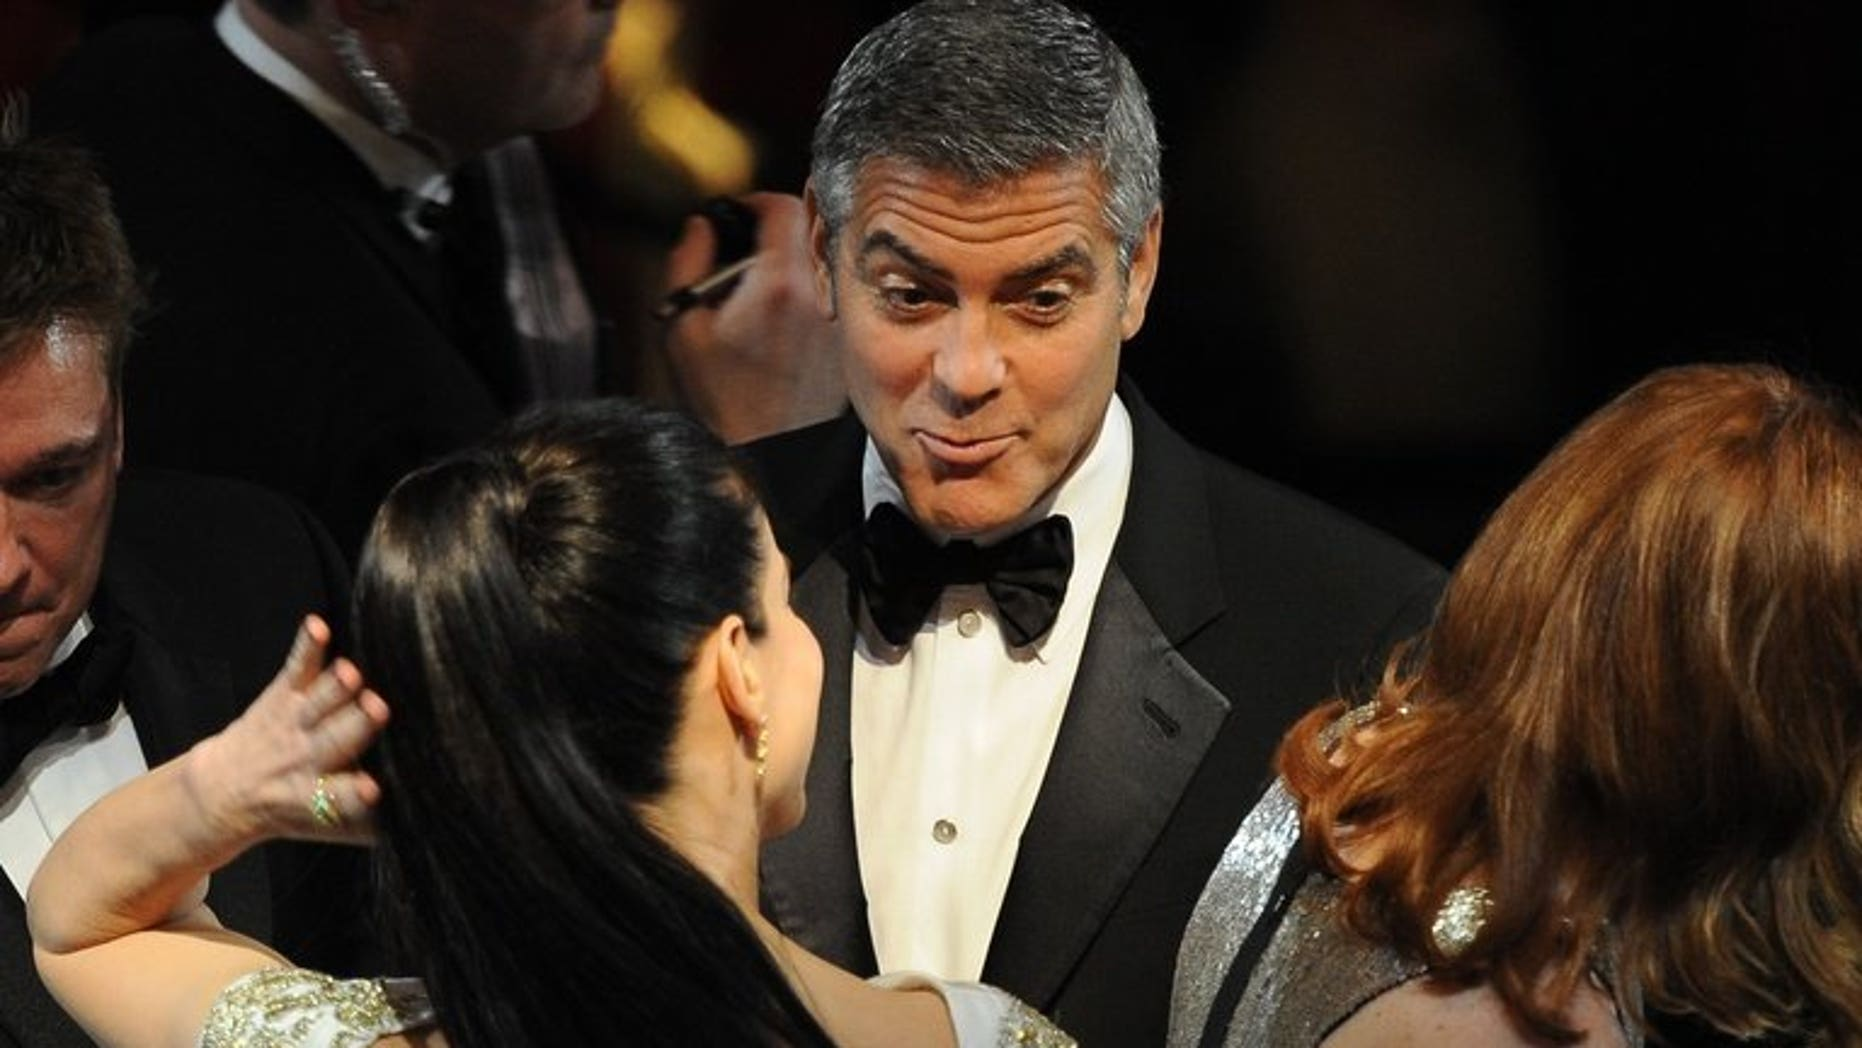 """US actor George Clooney talks to actress Sandra Bullock (C) prior to the 84th Annual Academy Awards in Hollywood, California on February 26, 2012. Hollywood heavyweights Bullock and Clooney will open the Venice film festival next month with their new movie """"Gravity"""" where they play two astronauts on an ill-fated mission."""